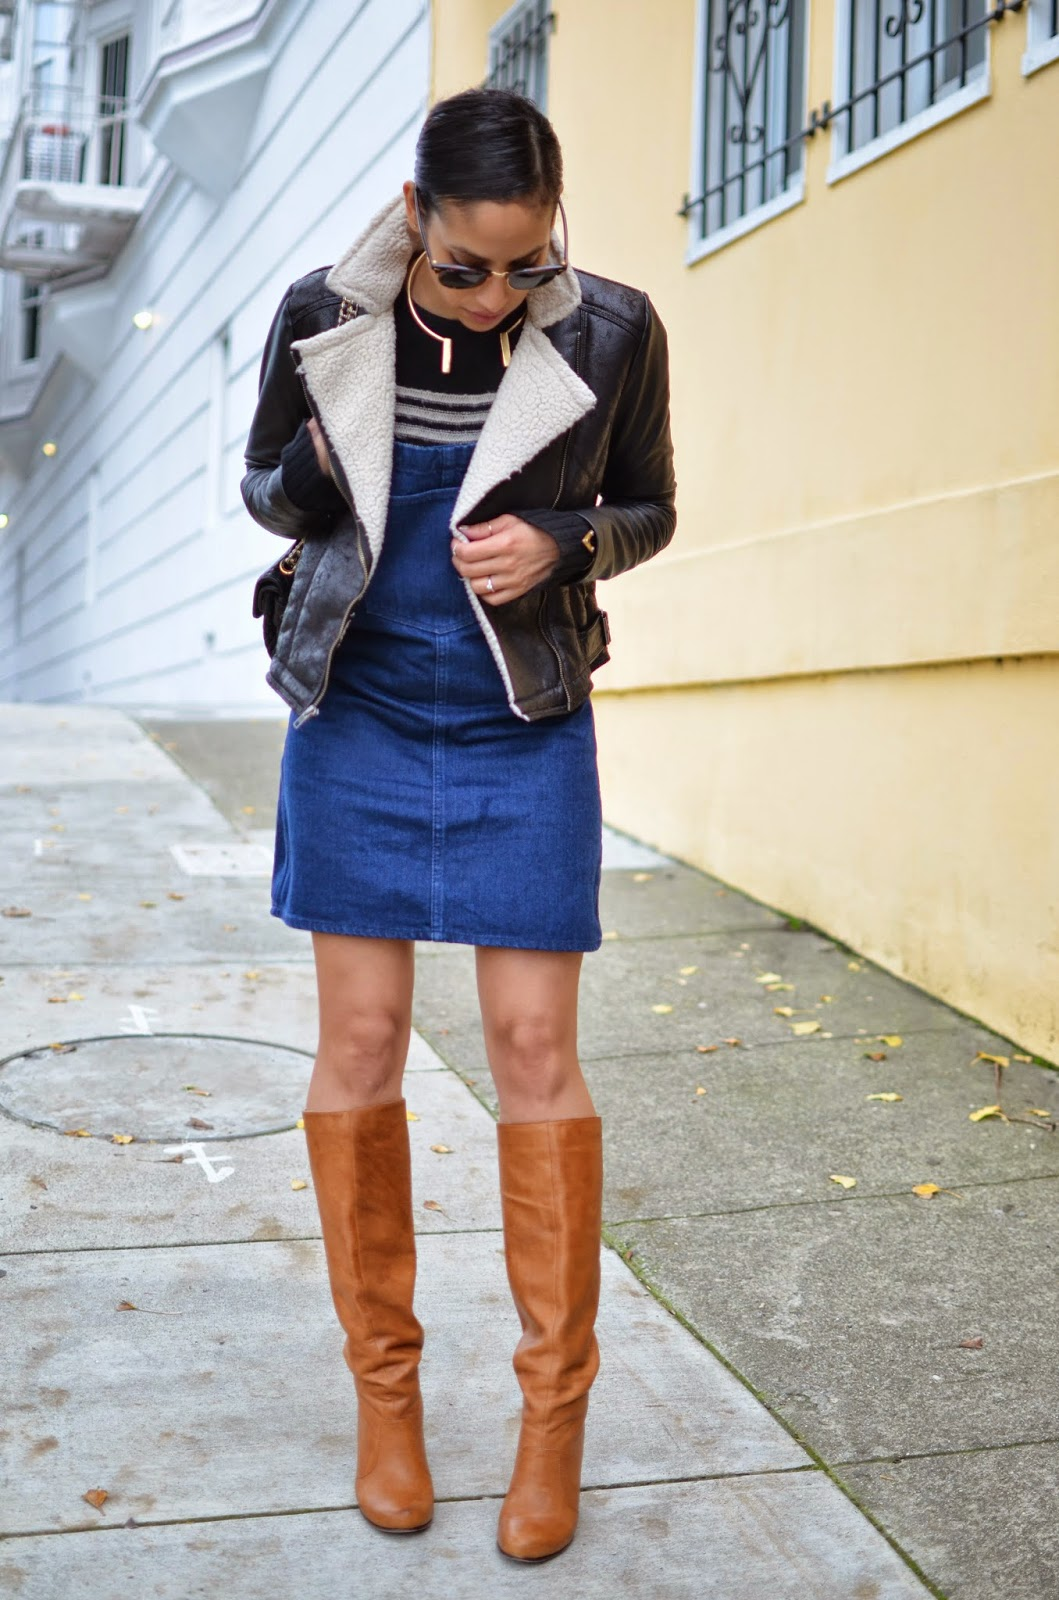 Dolce Vita boots, denim overalls, striped sweater, SF style